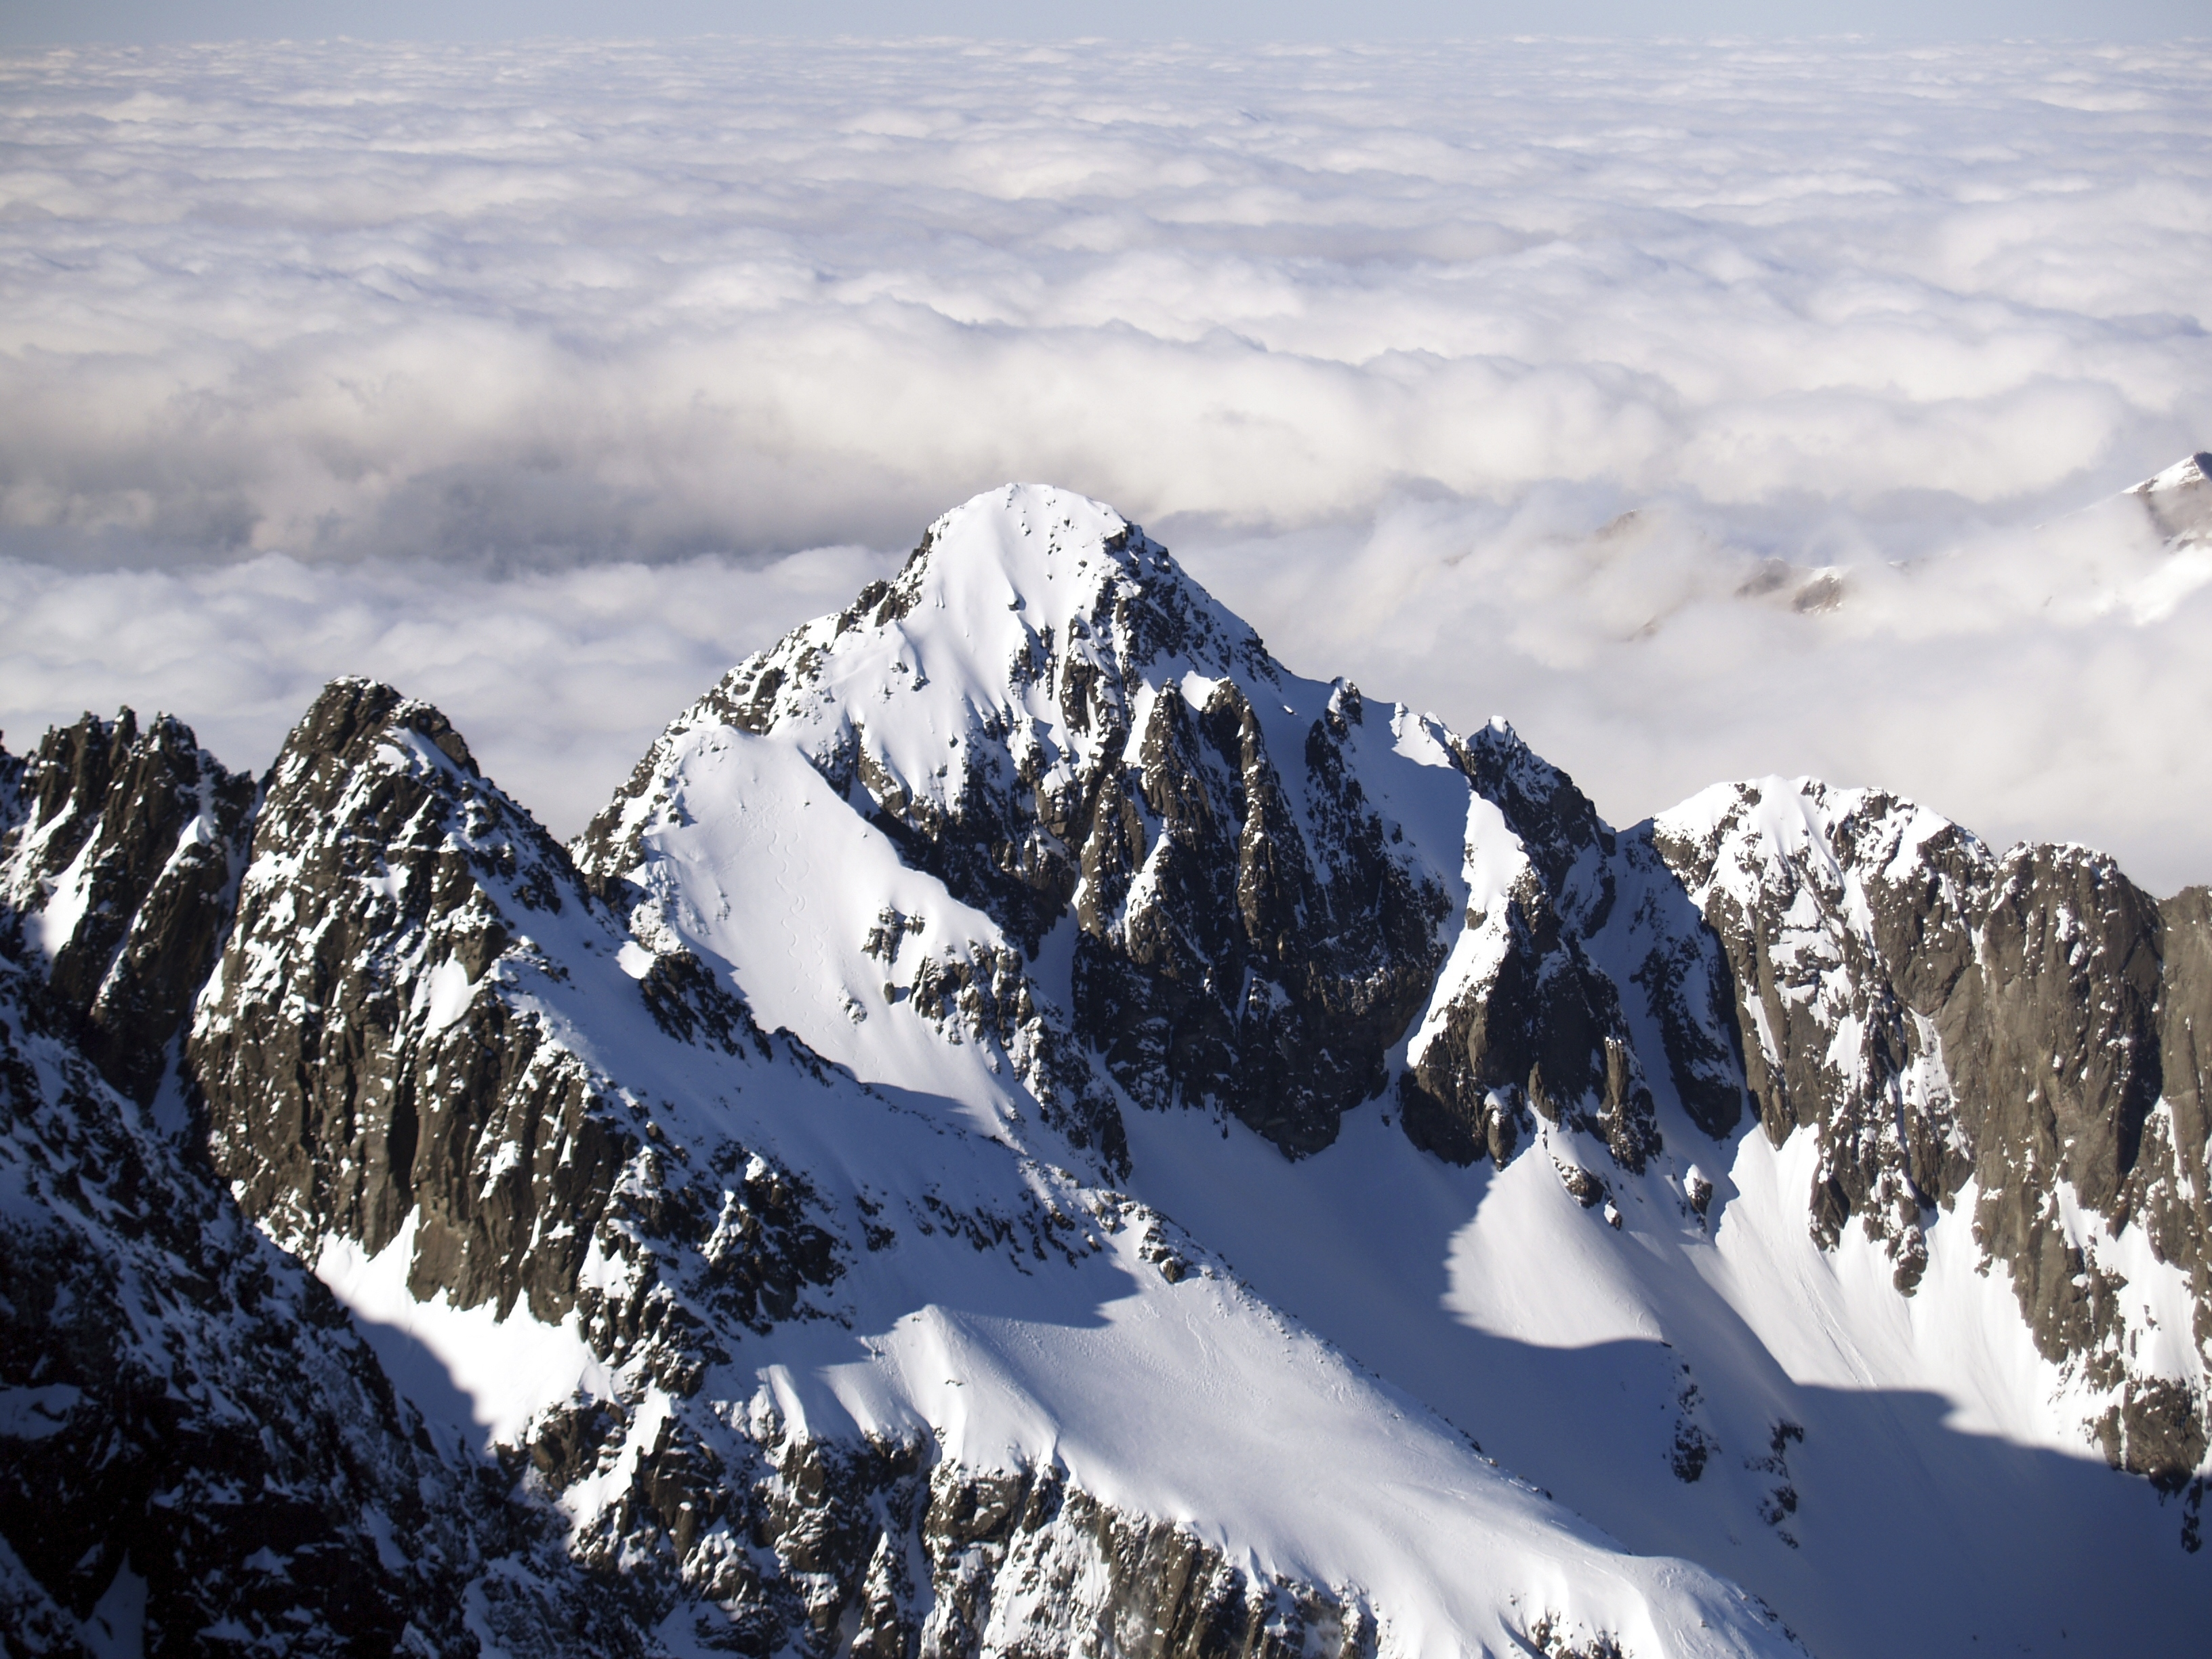 Slovakia's Tatra Mountains are popular with hikers and skiiers